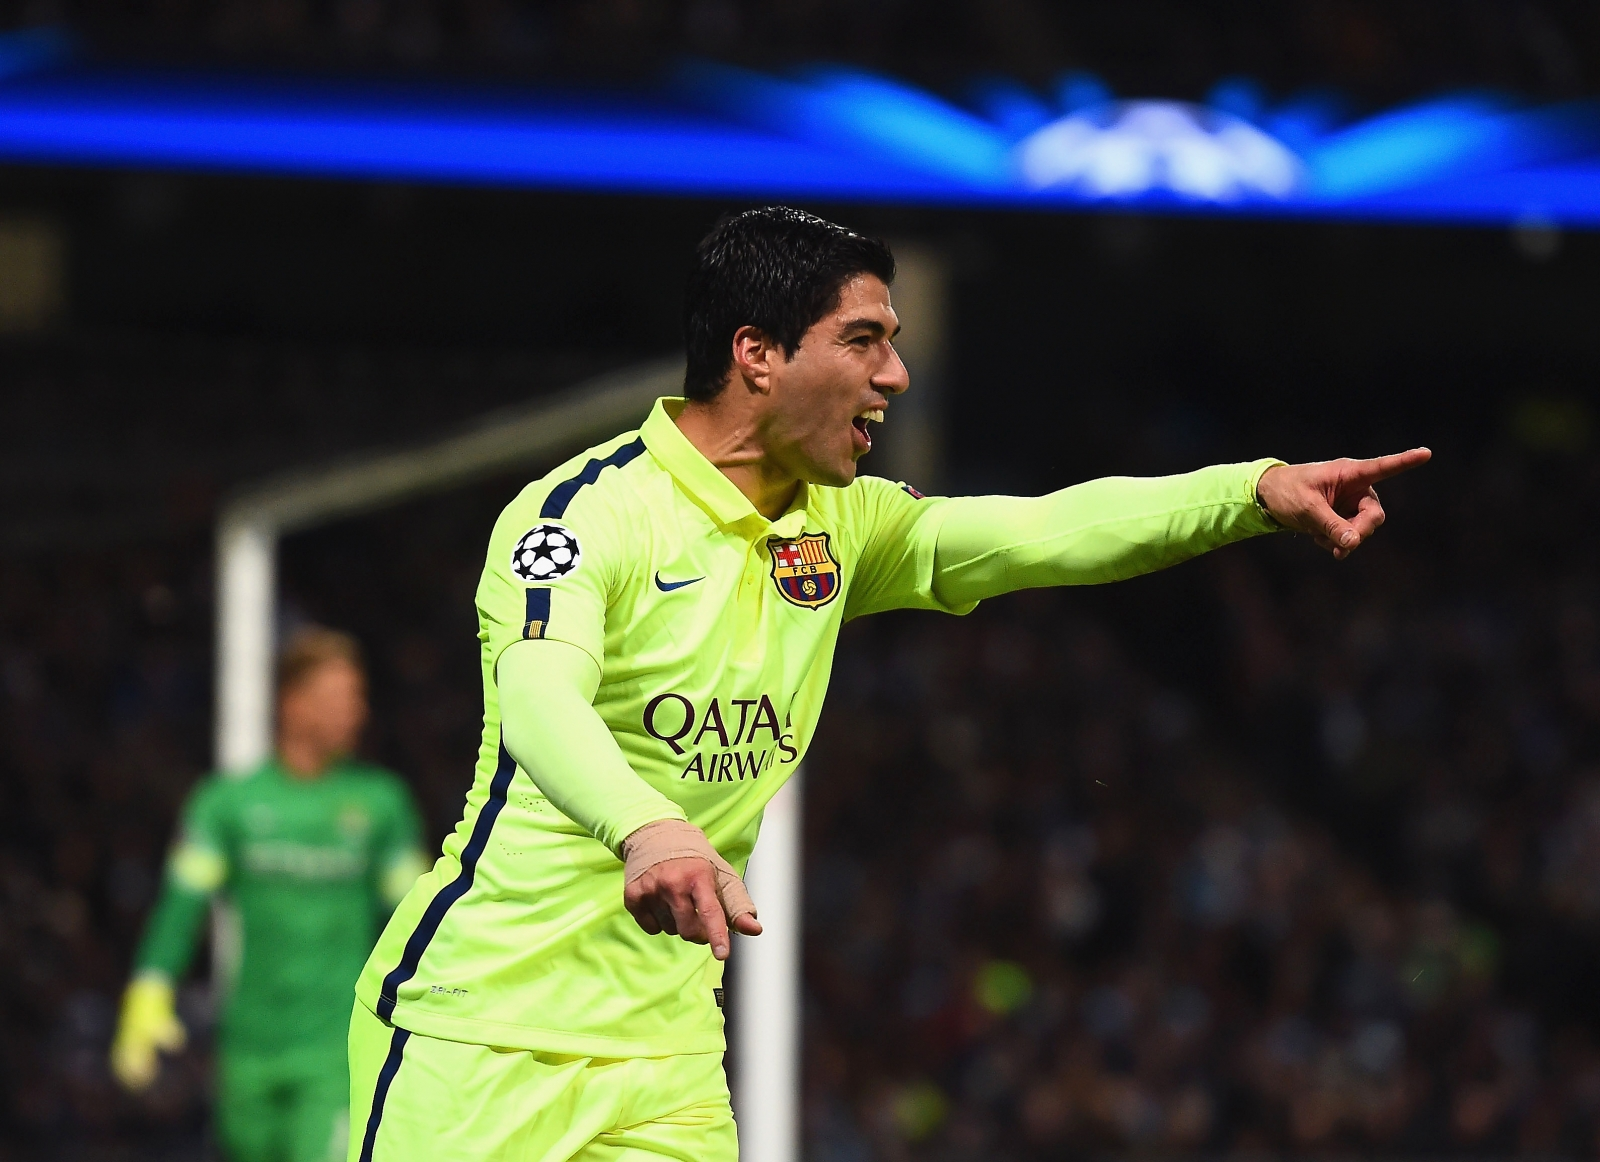 Luis Suarez £65m move from Liverpool to Barcelona named best La Liga transfer